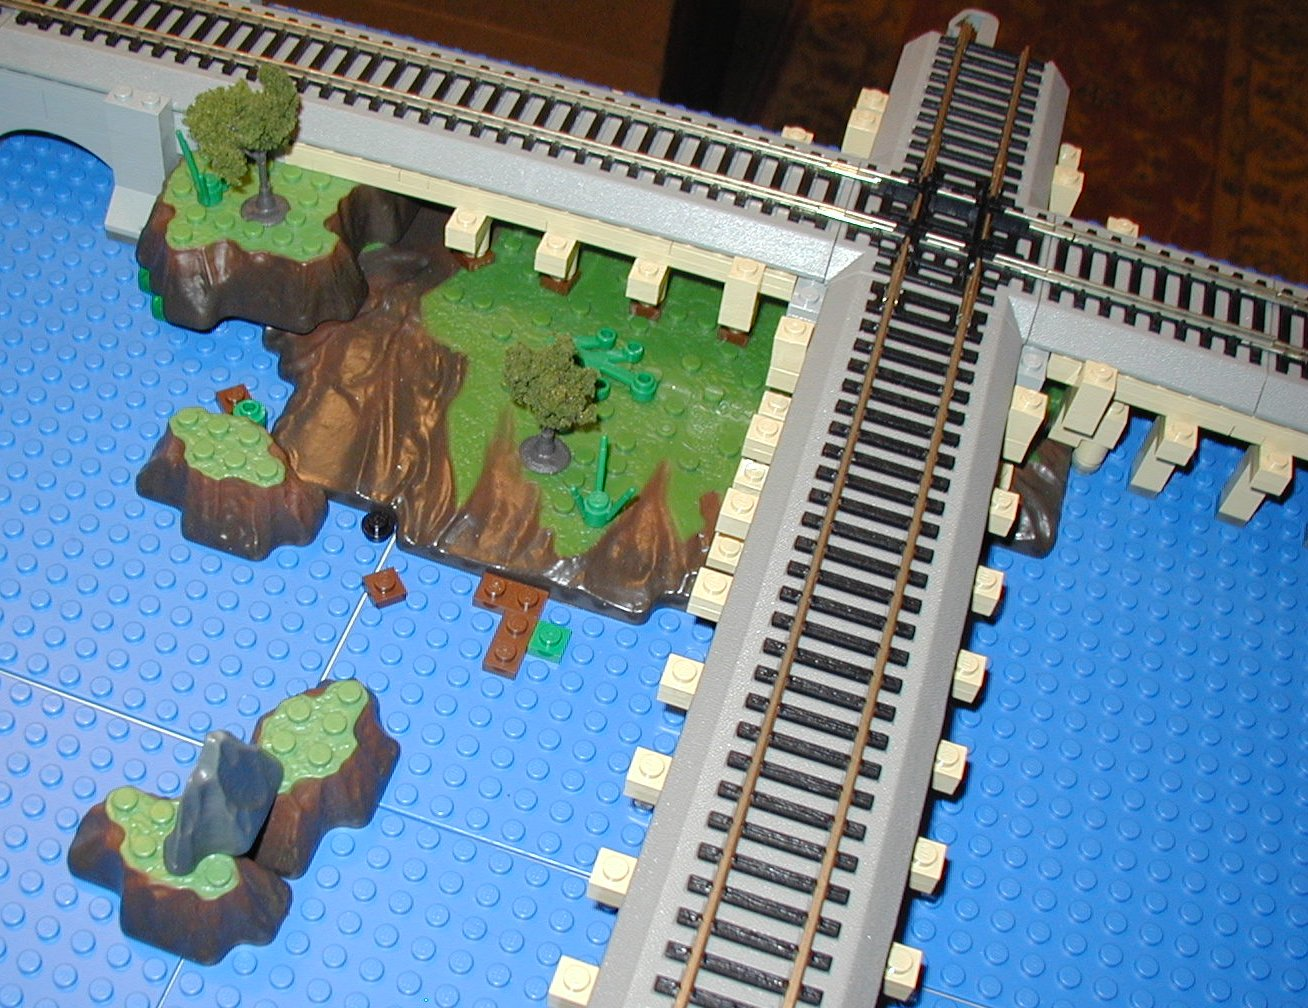 2007-01-04-thr-lego-mega-ho-trains5.jpg